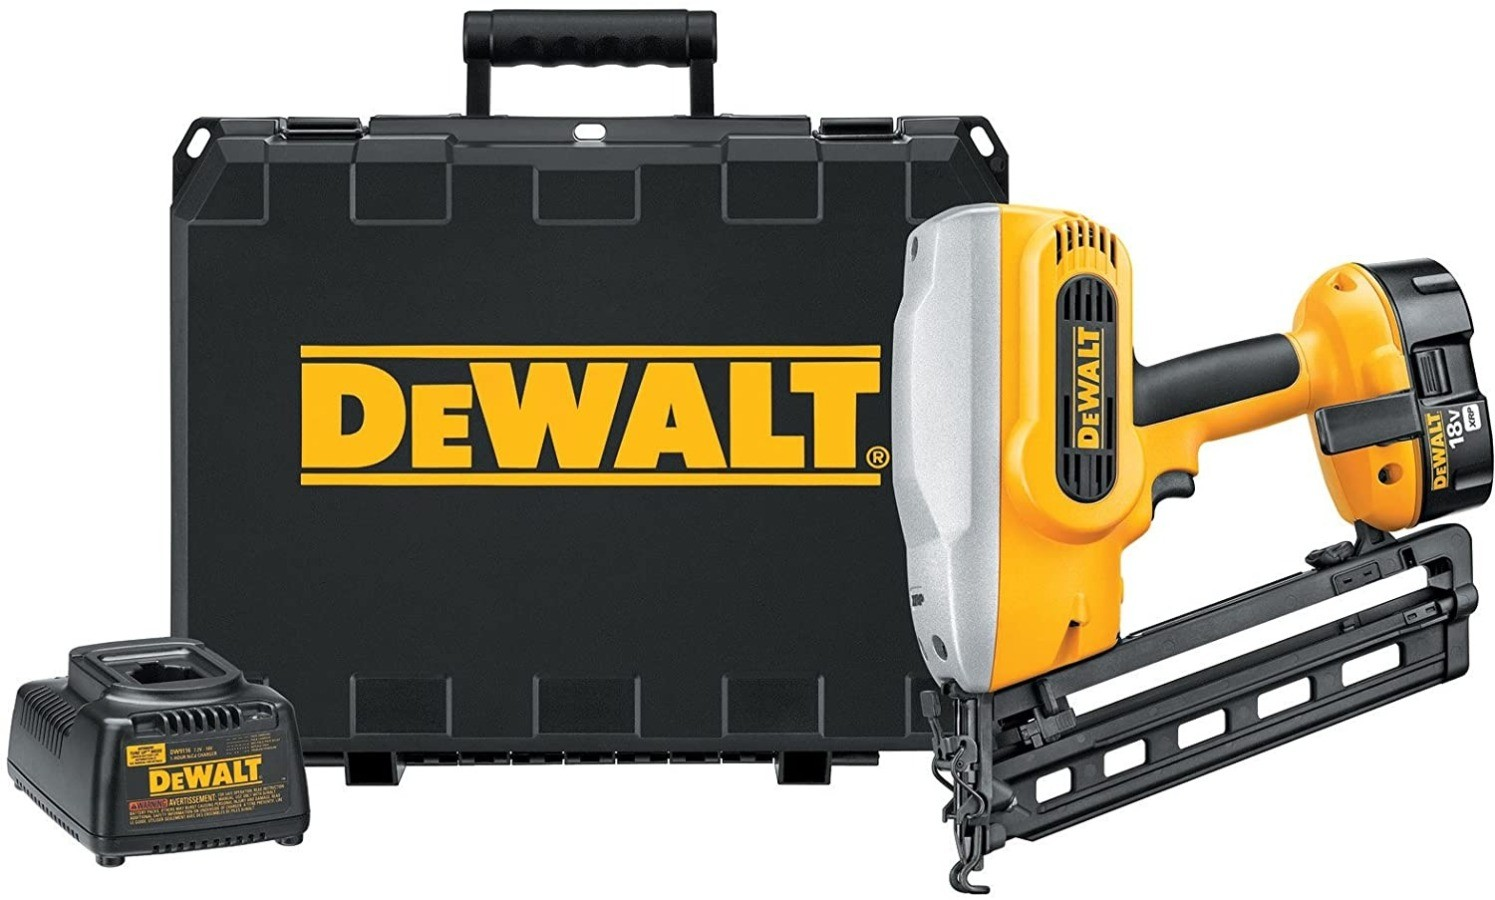 Image of DEWALT DC618K, one of the best nail guns for trim